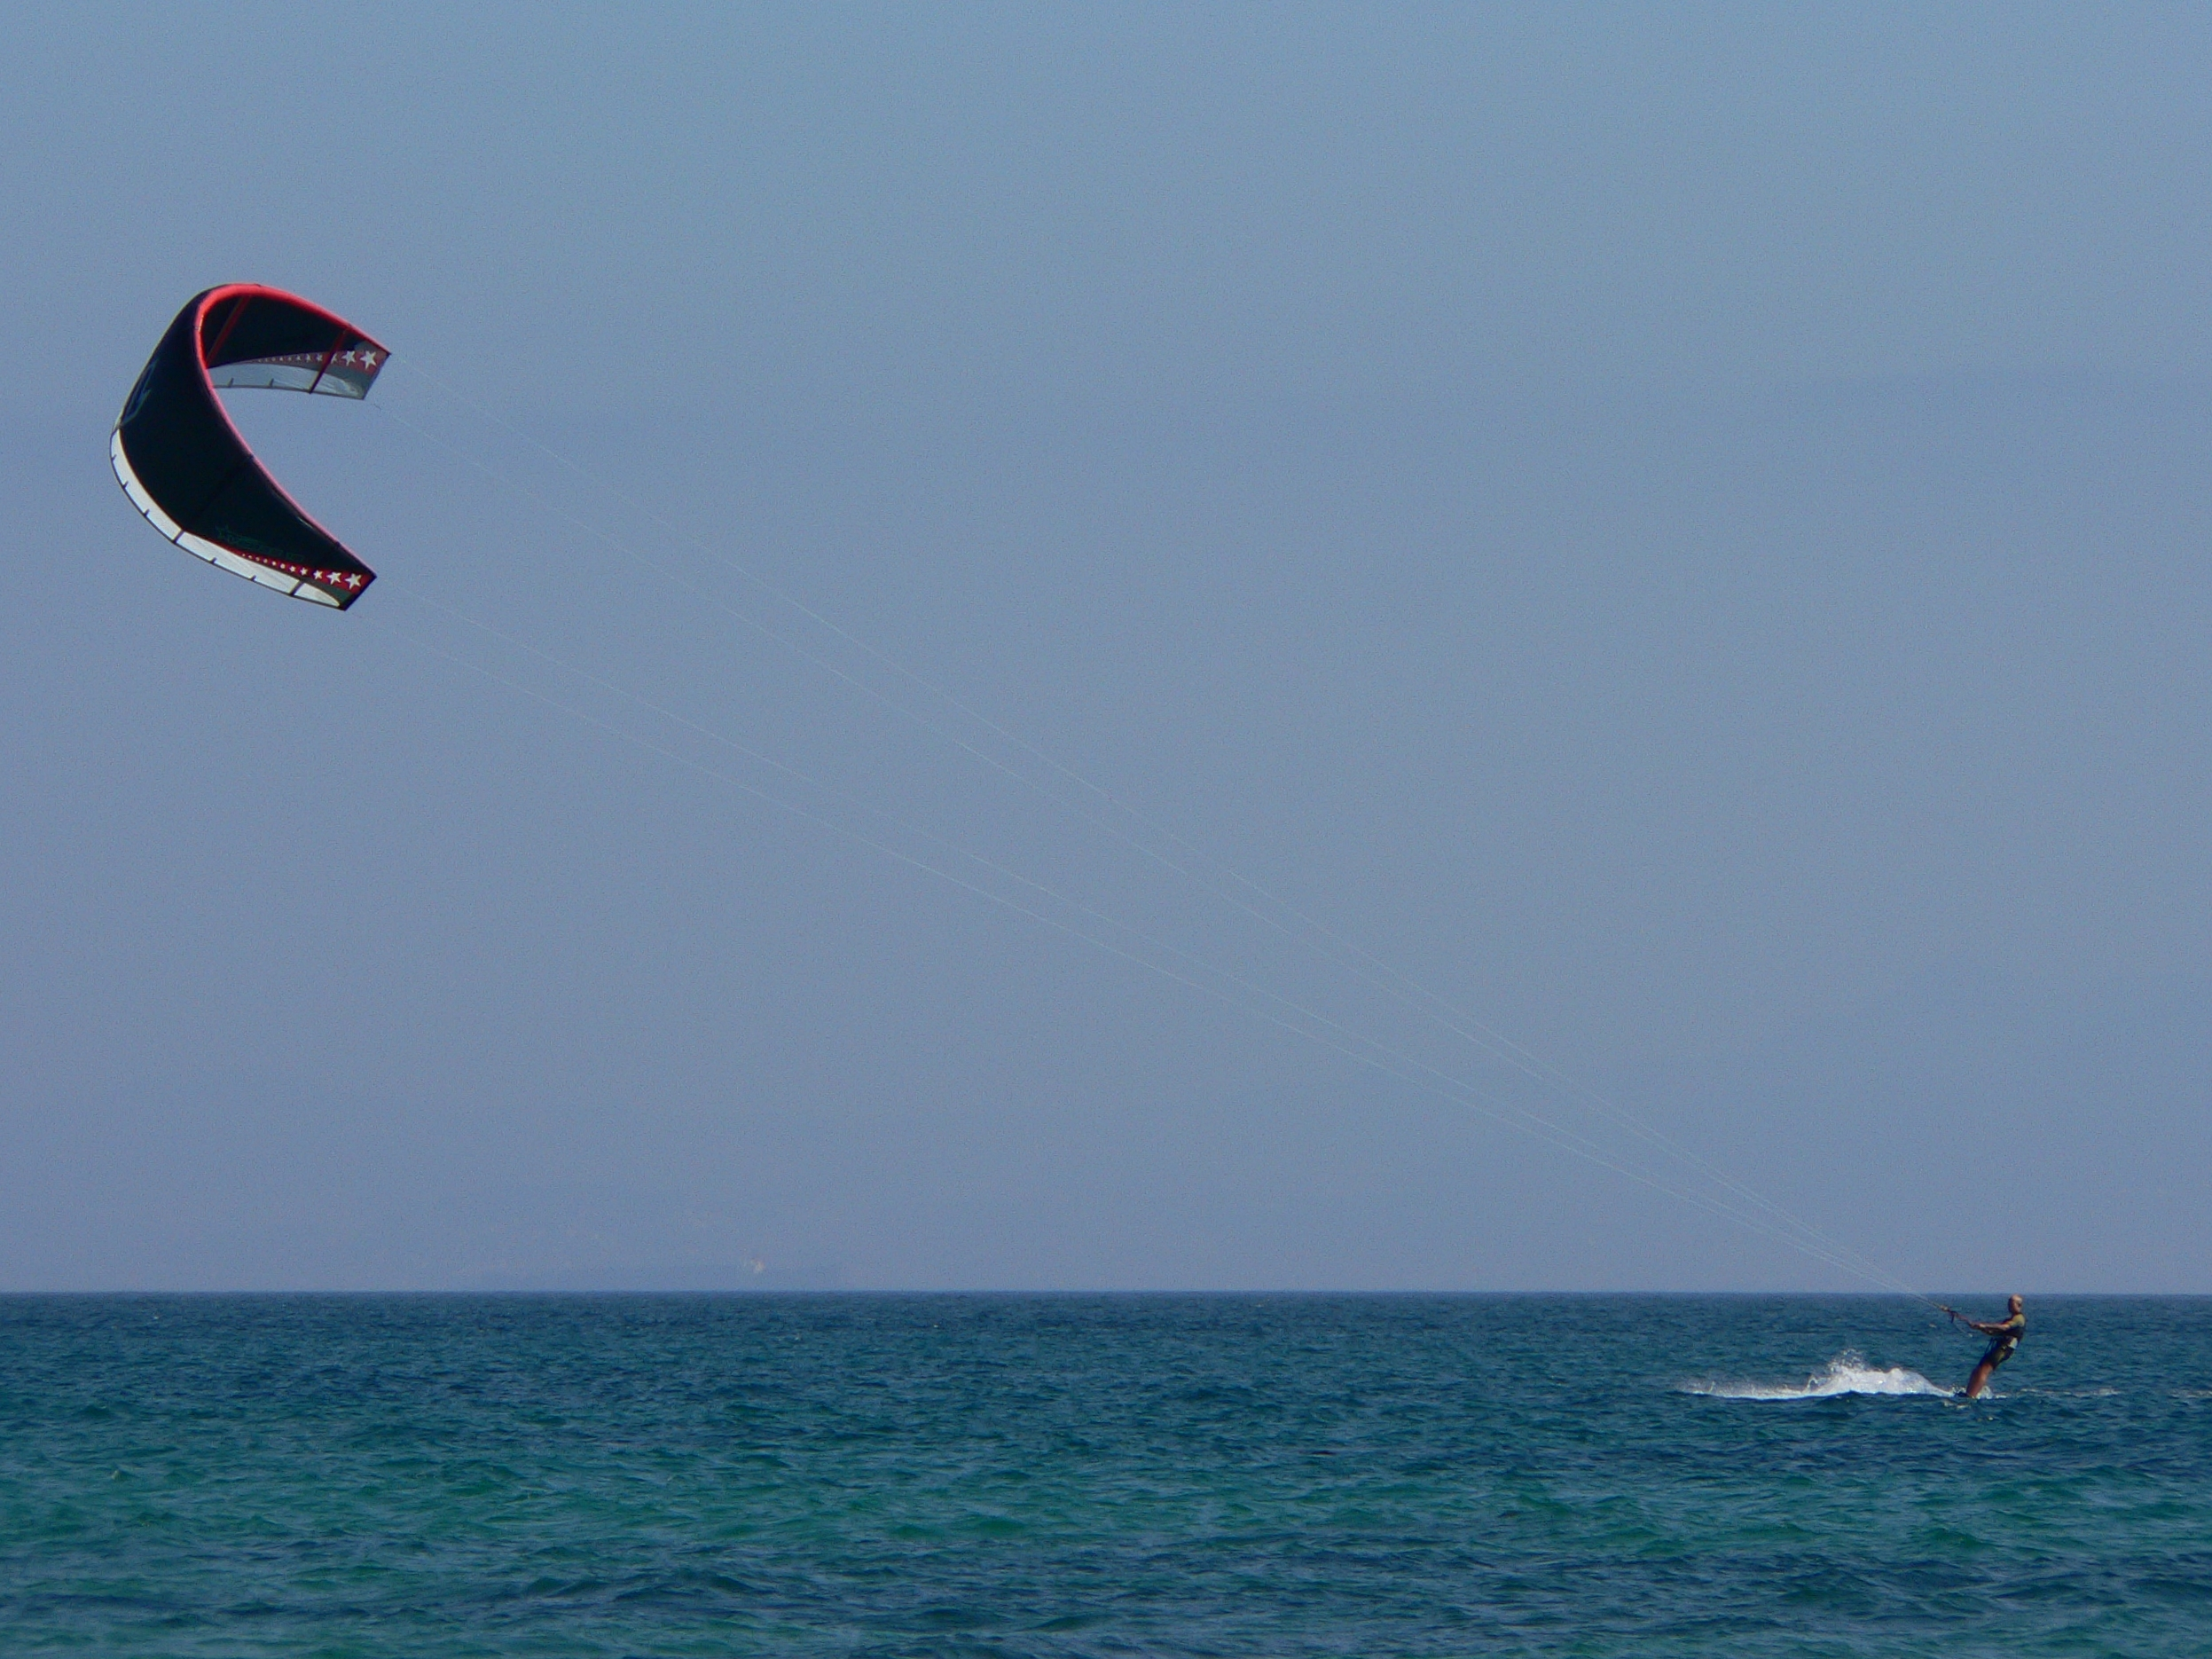 http://upload.wikimedia.org/wikipedia/commons/0/05/Kitesurfing.JPG